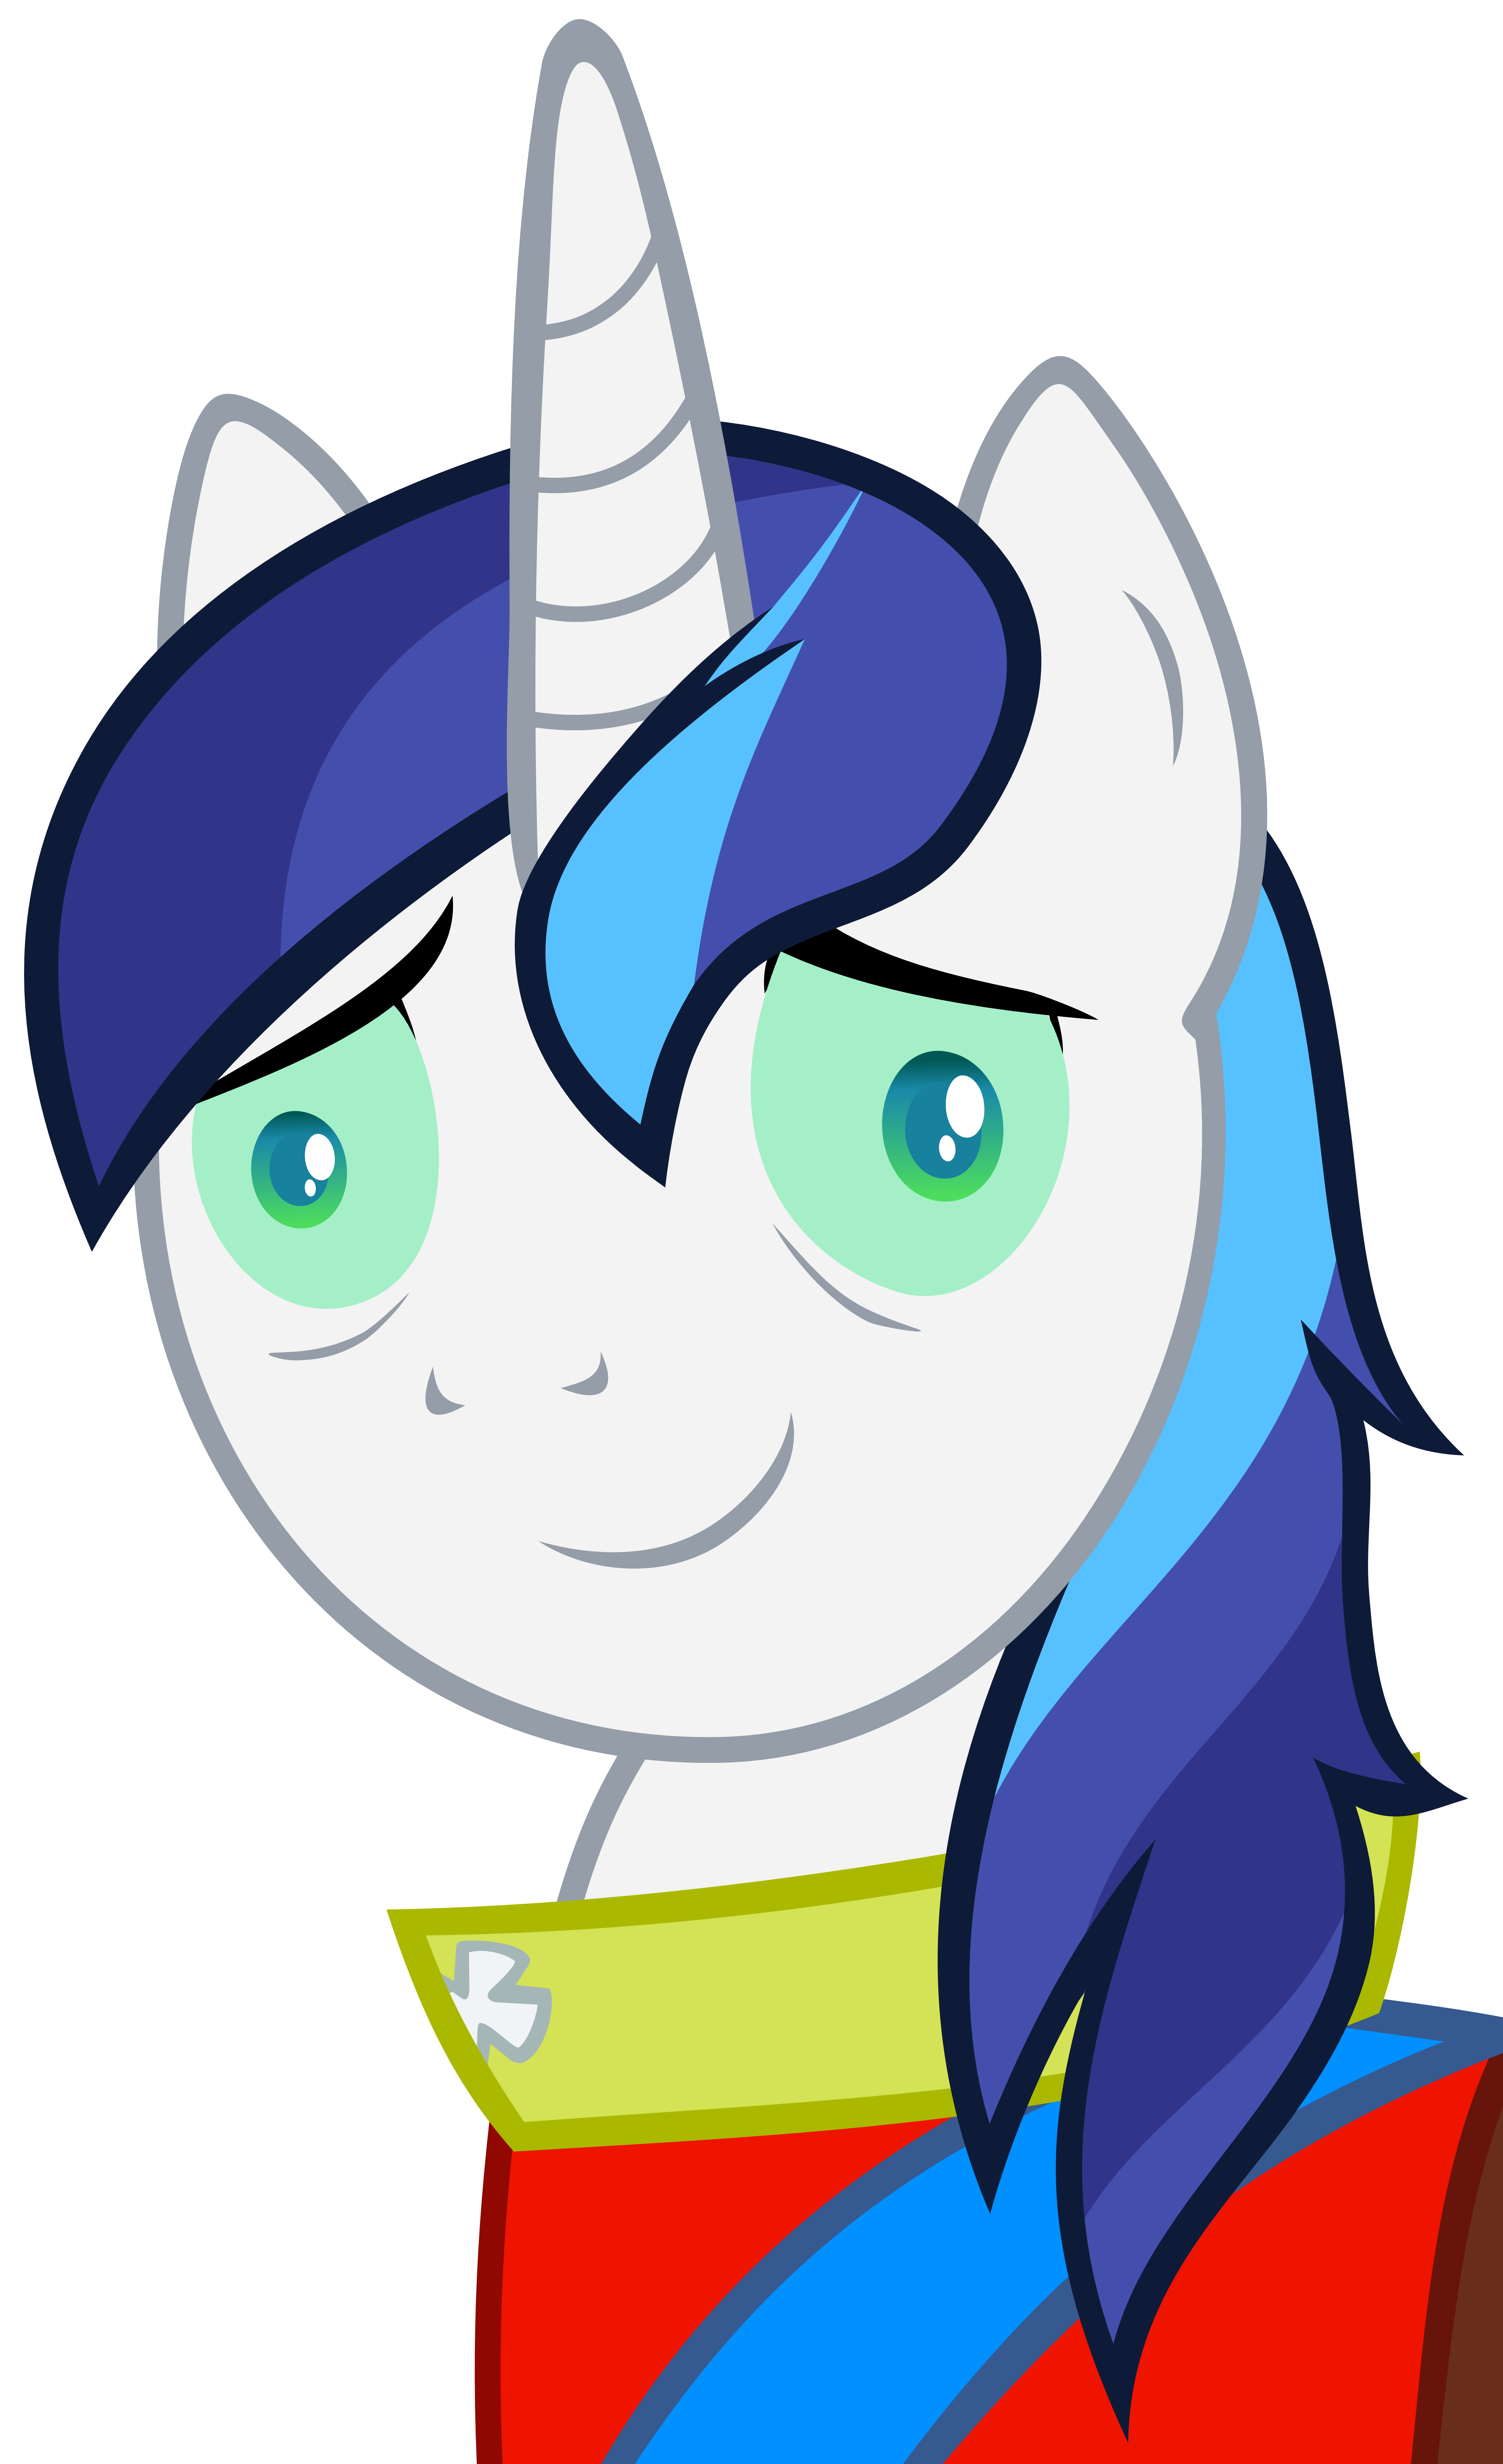 Shining Armor at his best by The-Smiling-Pony